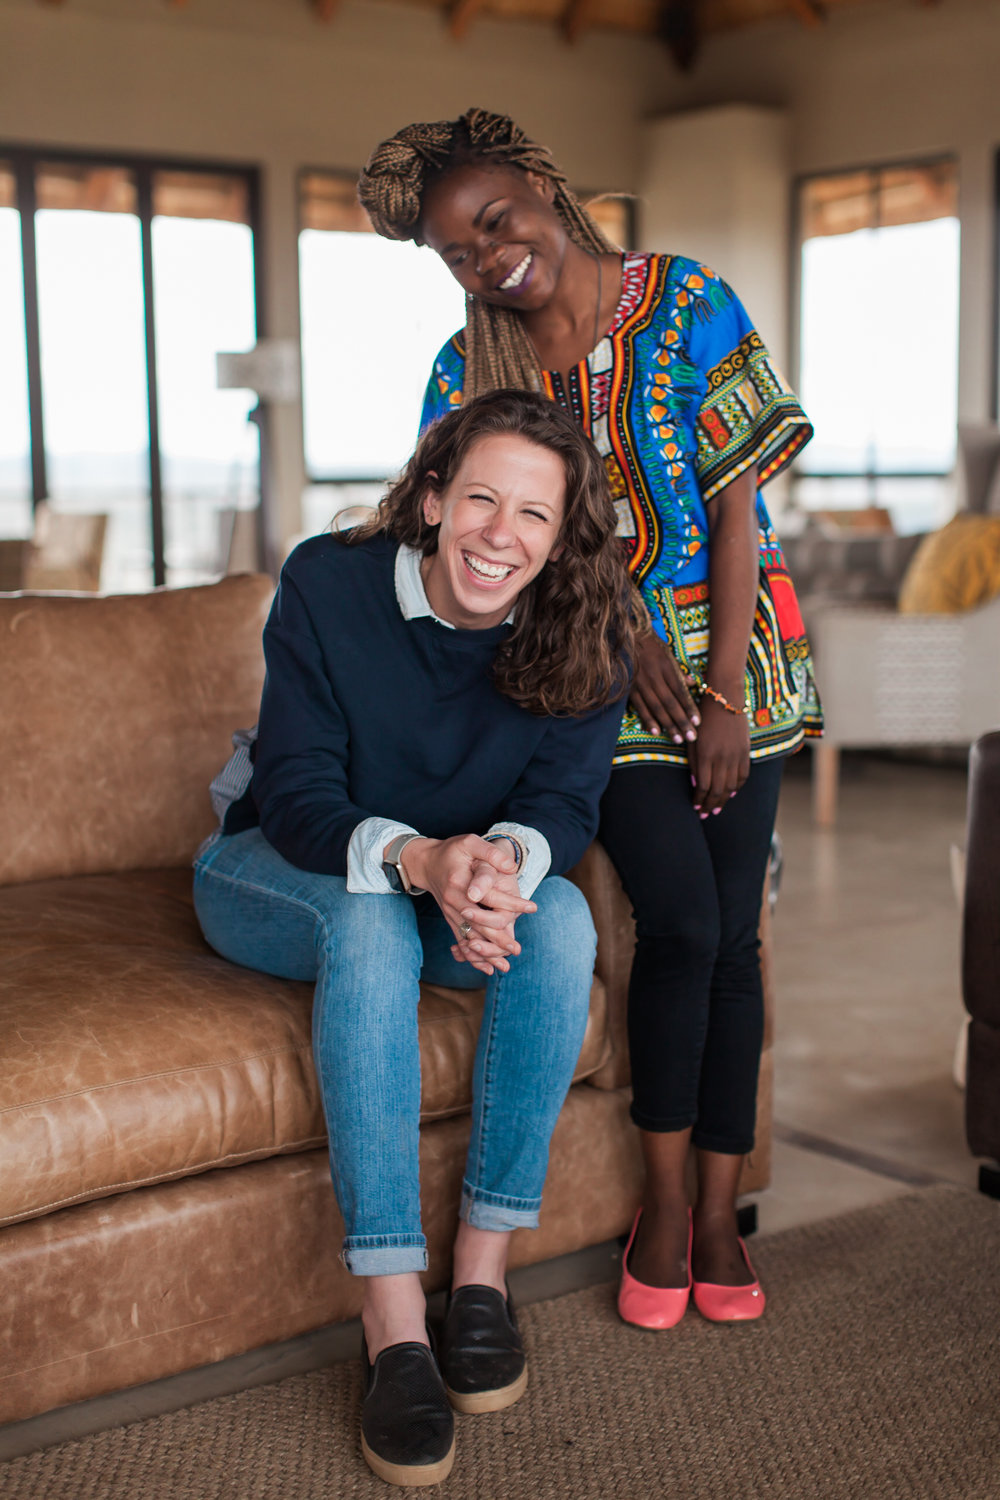 Our Story - Hi, we are Elizabeth and Amanda the co-founders of The Kukhoma Project. While working for another non-profit organization in Lusaka, Zambia, God put on our hearts a specific calling. In the summer of 2017, He burdened our hearts with thousands of girls in the city who were victims of sexual abuse that had and subsequently become pregnant. Despite being so large in number, this group of children was being ignored with virtually no care facilities or organizations existing to save them. Along with this burden came a vision; a vision of a home that was not only safe, but one of rehabilitation, including counselling, discipleship, skills/trade training, and partnerships with schools for ongoing education. This place would even teach self-sustainability for the programs and engage other women in the community in efforts to empower them.Learn More